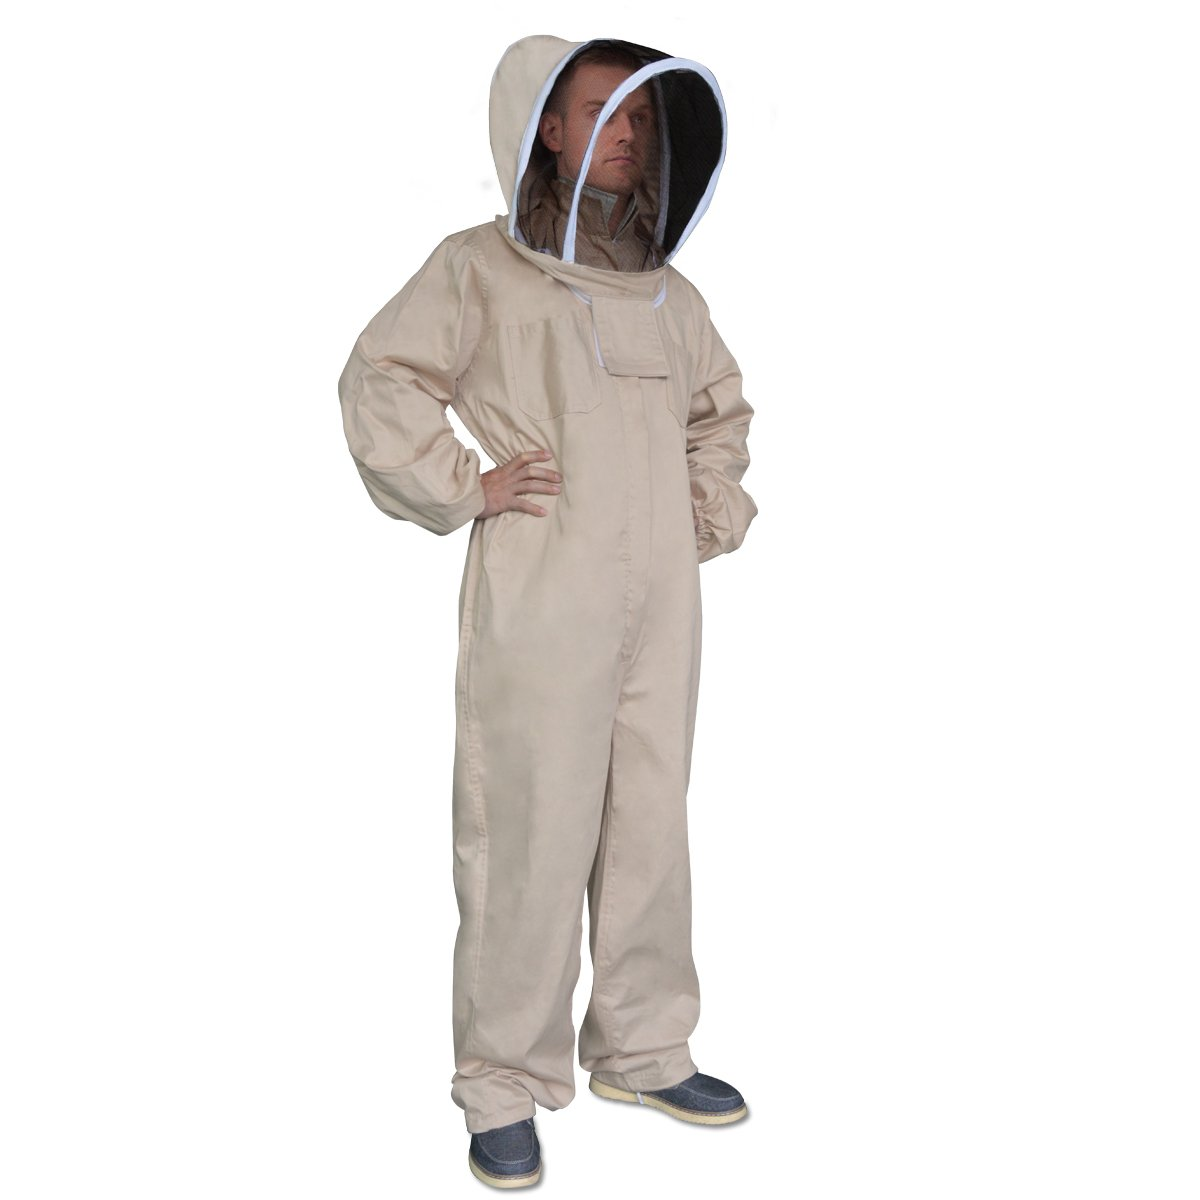 New Professional Medium Cotton Full Body Beekeeping Bee Keeping Suit, with Veil Hood by Aspectek